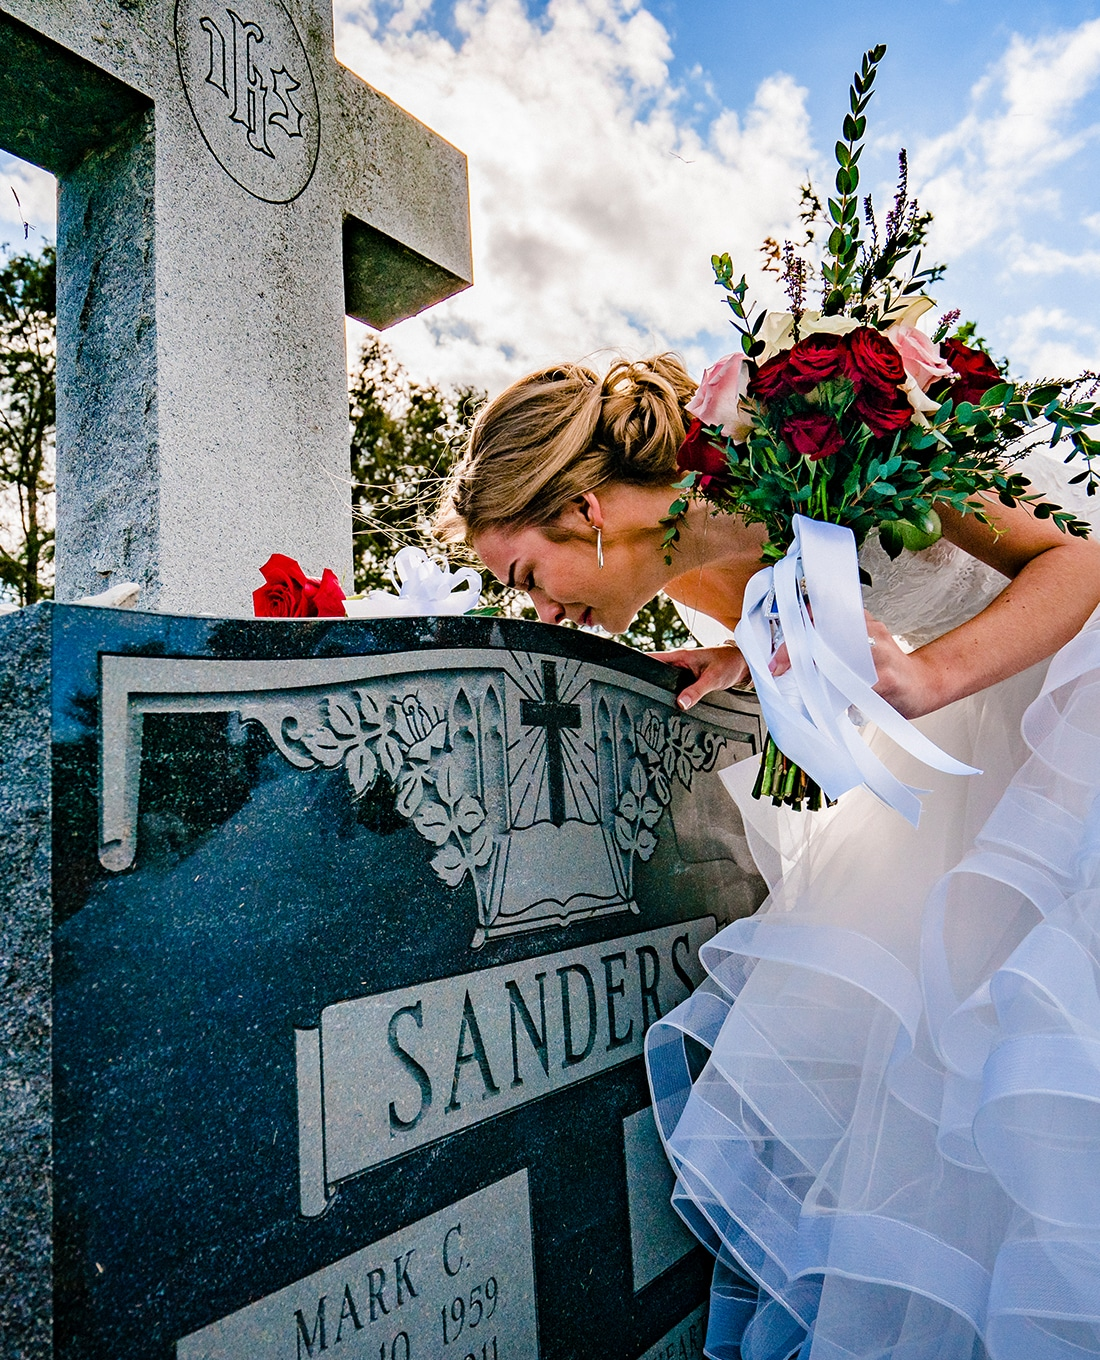 A colorful, candid picture of a bride leaning down to kiss the top of her fathe's gravestone on her sunny wedding day.